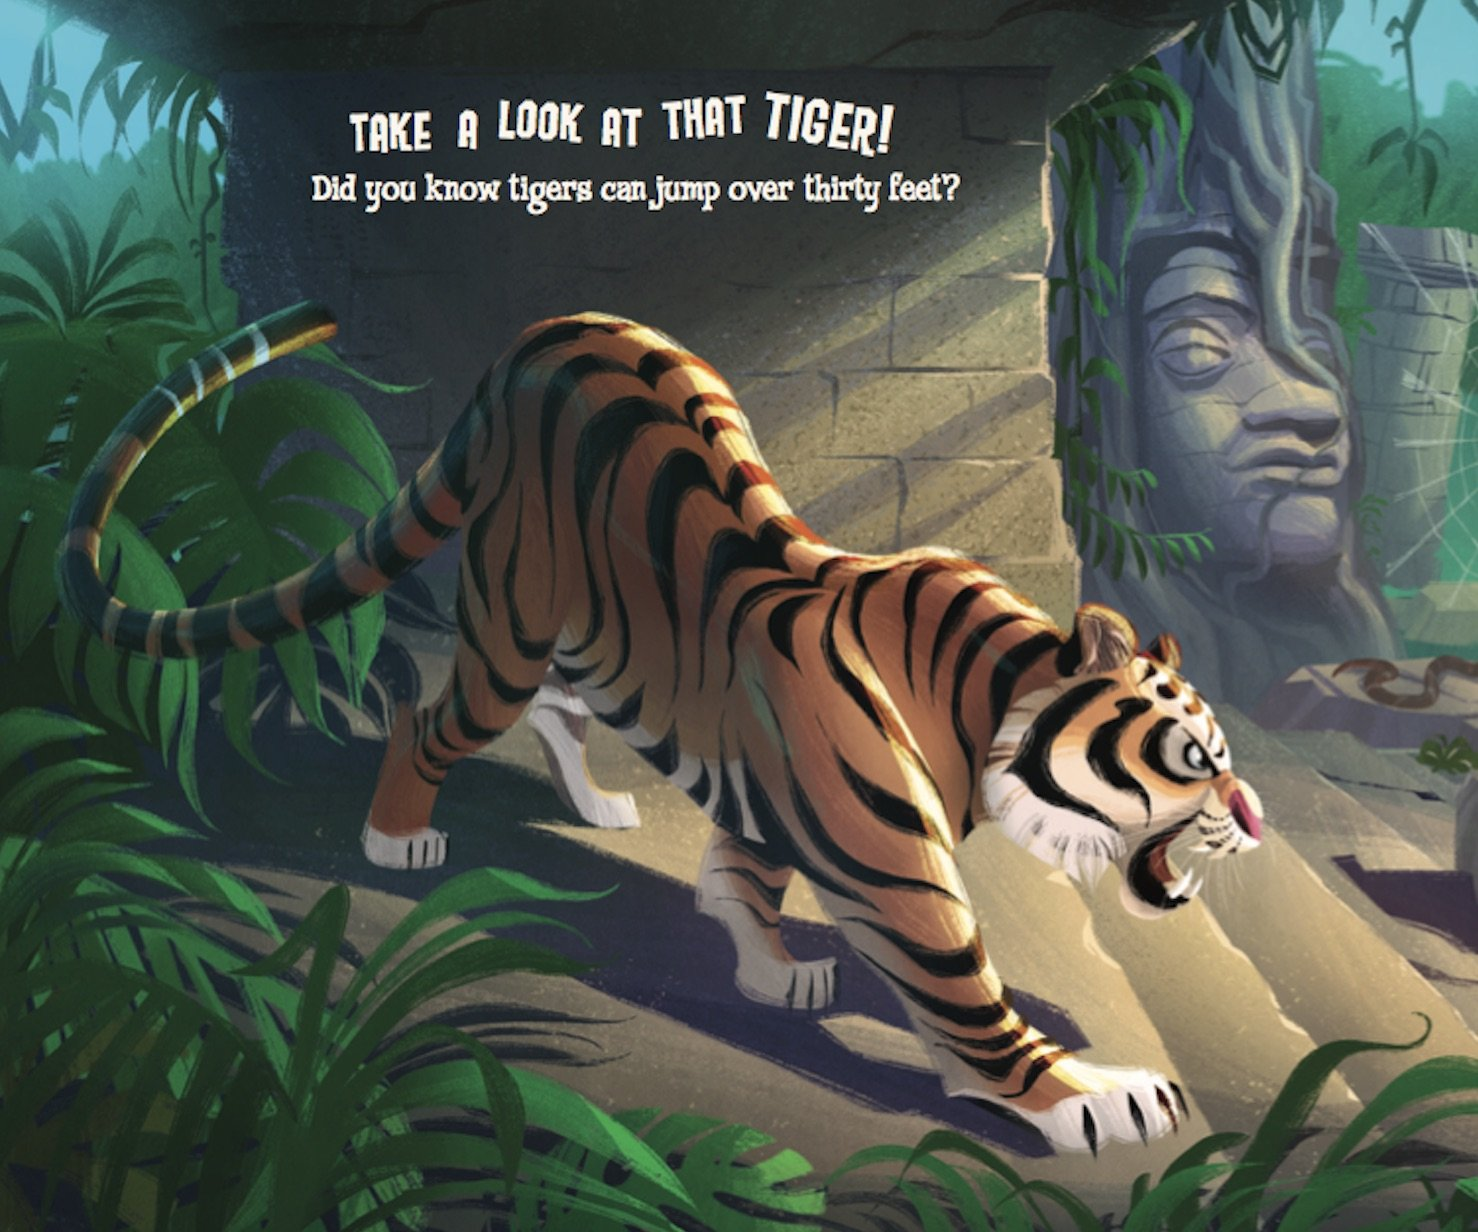 Disney Parks Presents: Jungle Cruise: Purchase Includes a CD with Narration! by Disney Press (Image #6)